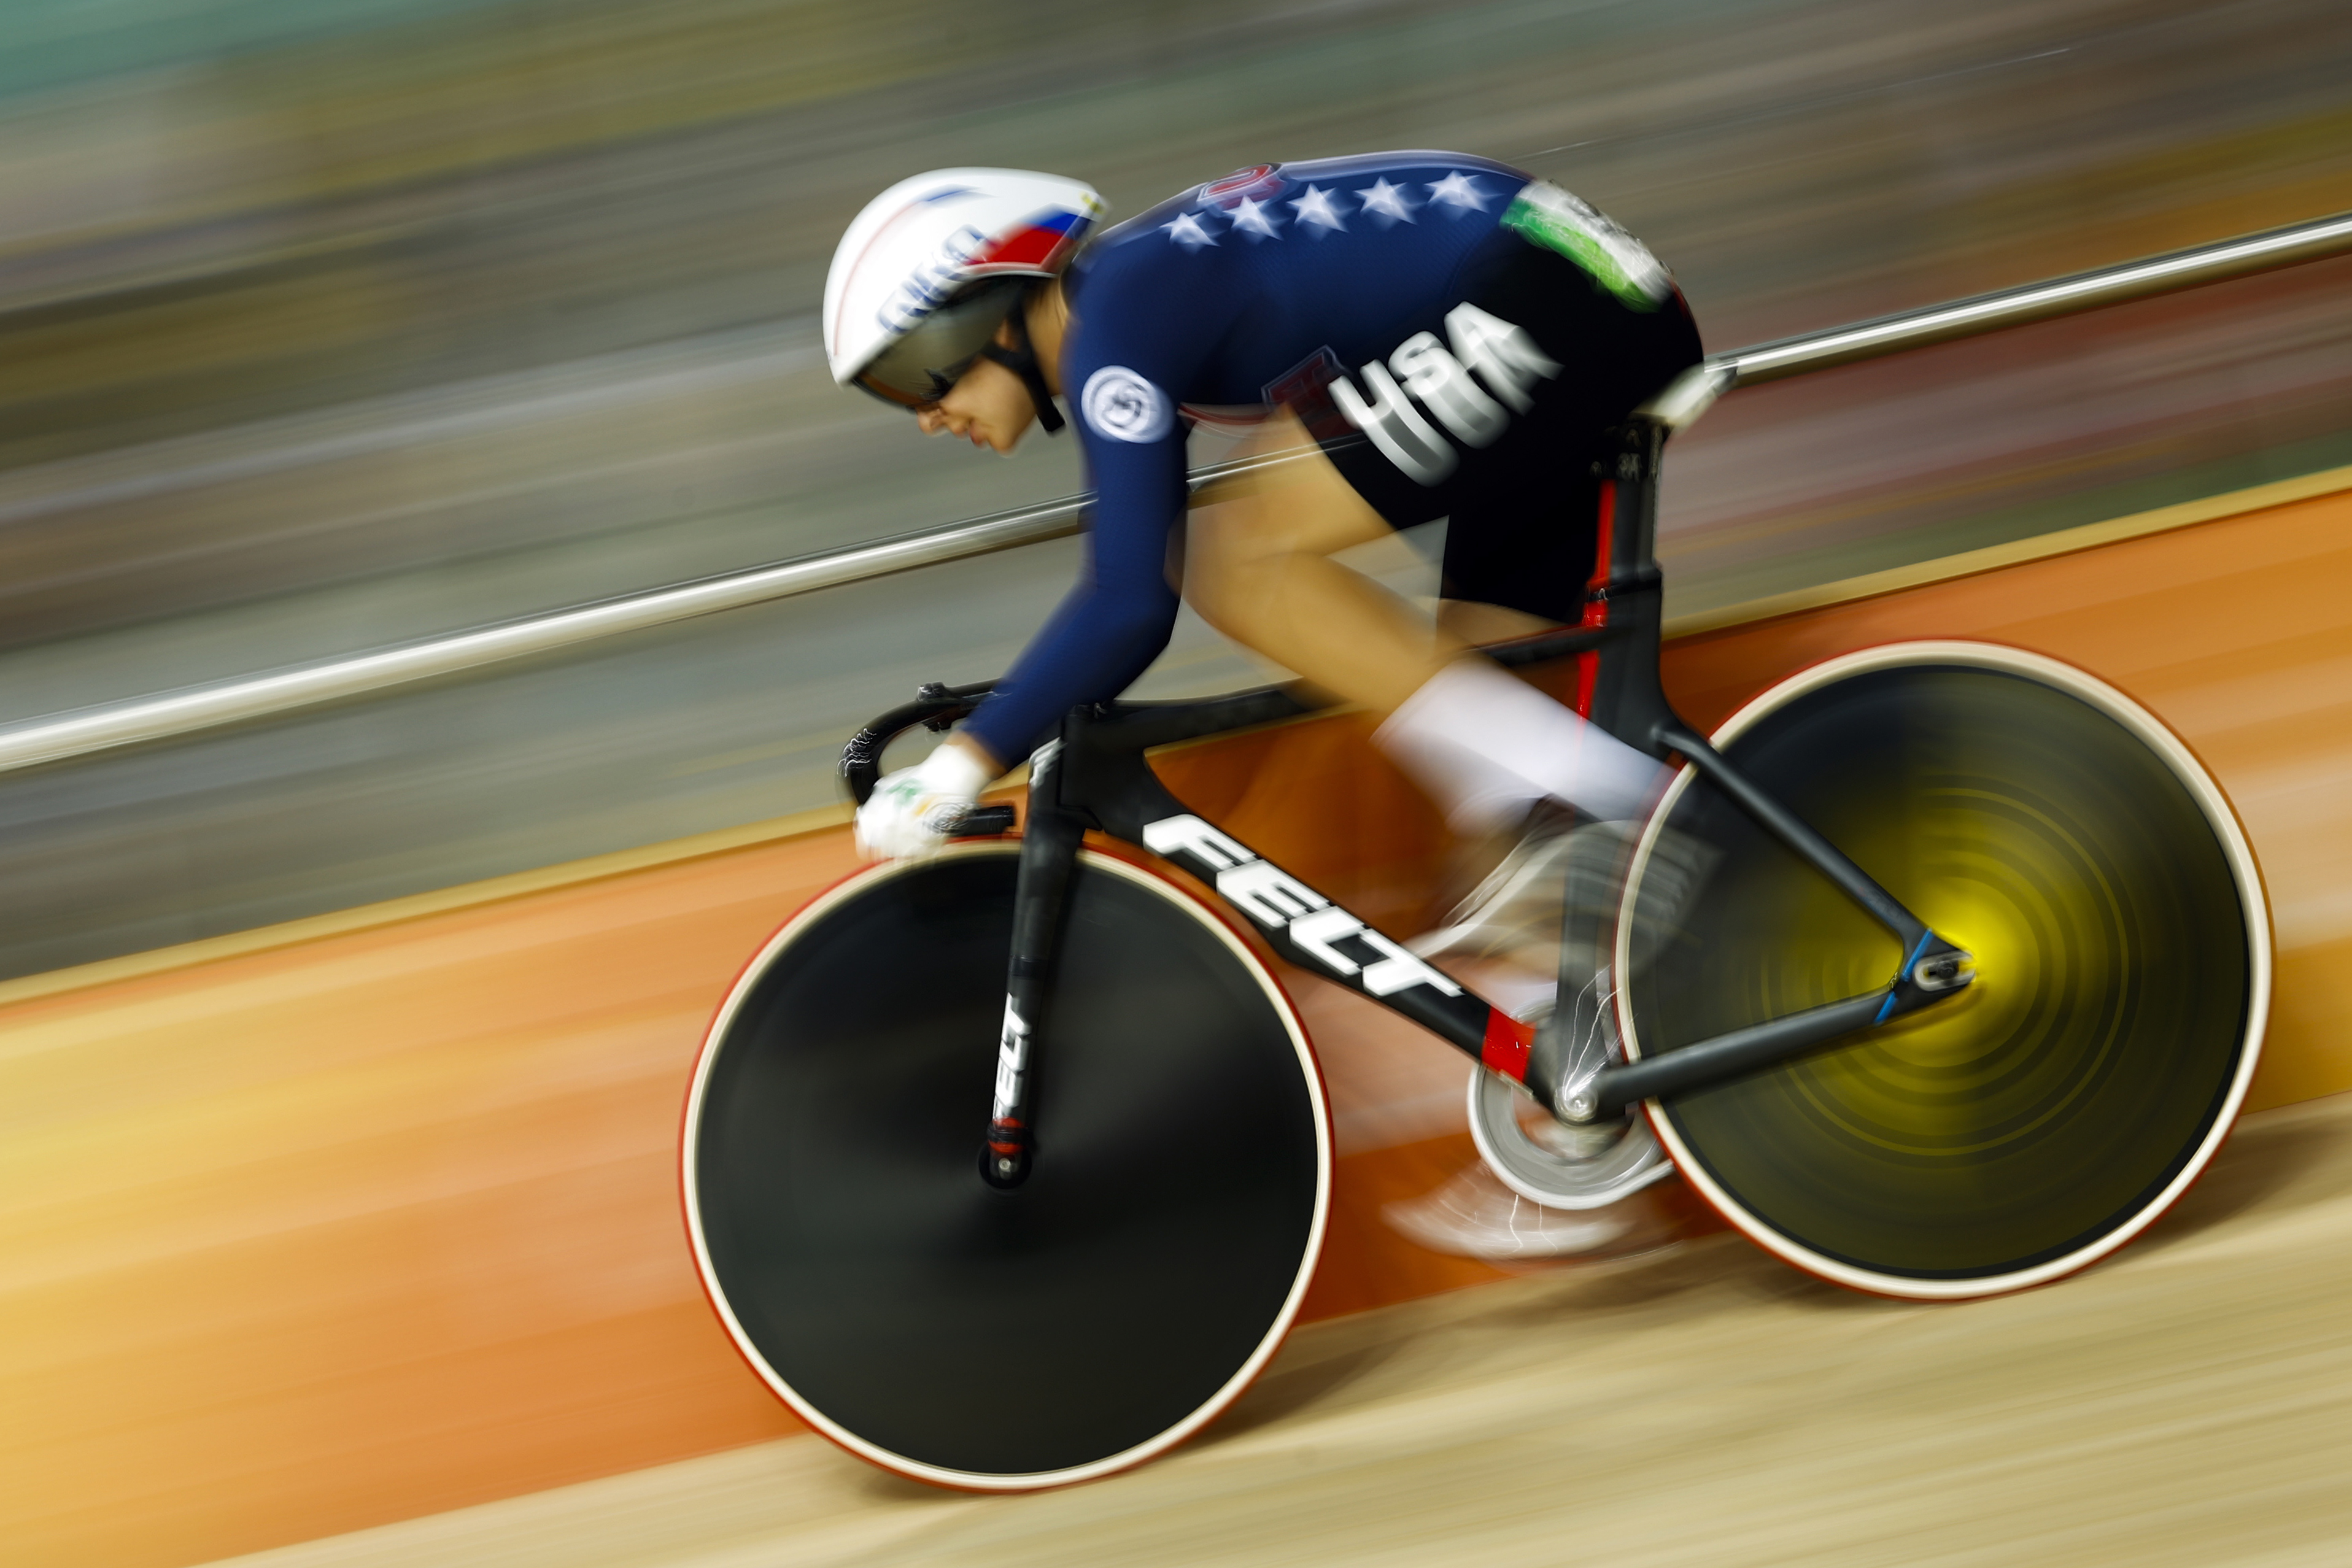 Photo: Sarah Hammer of the United States competes in the women's omnium at the Rio Olympic Velodrome (AP)